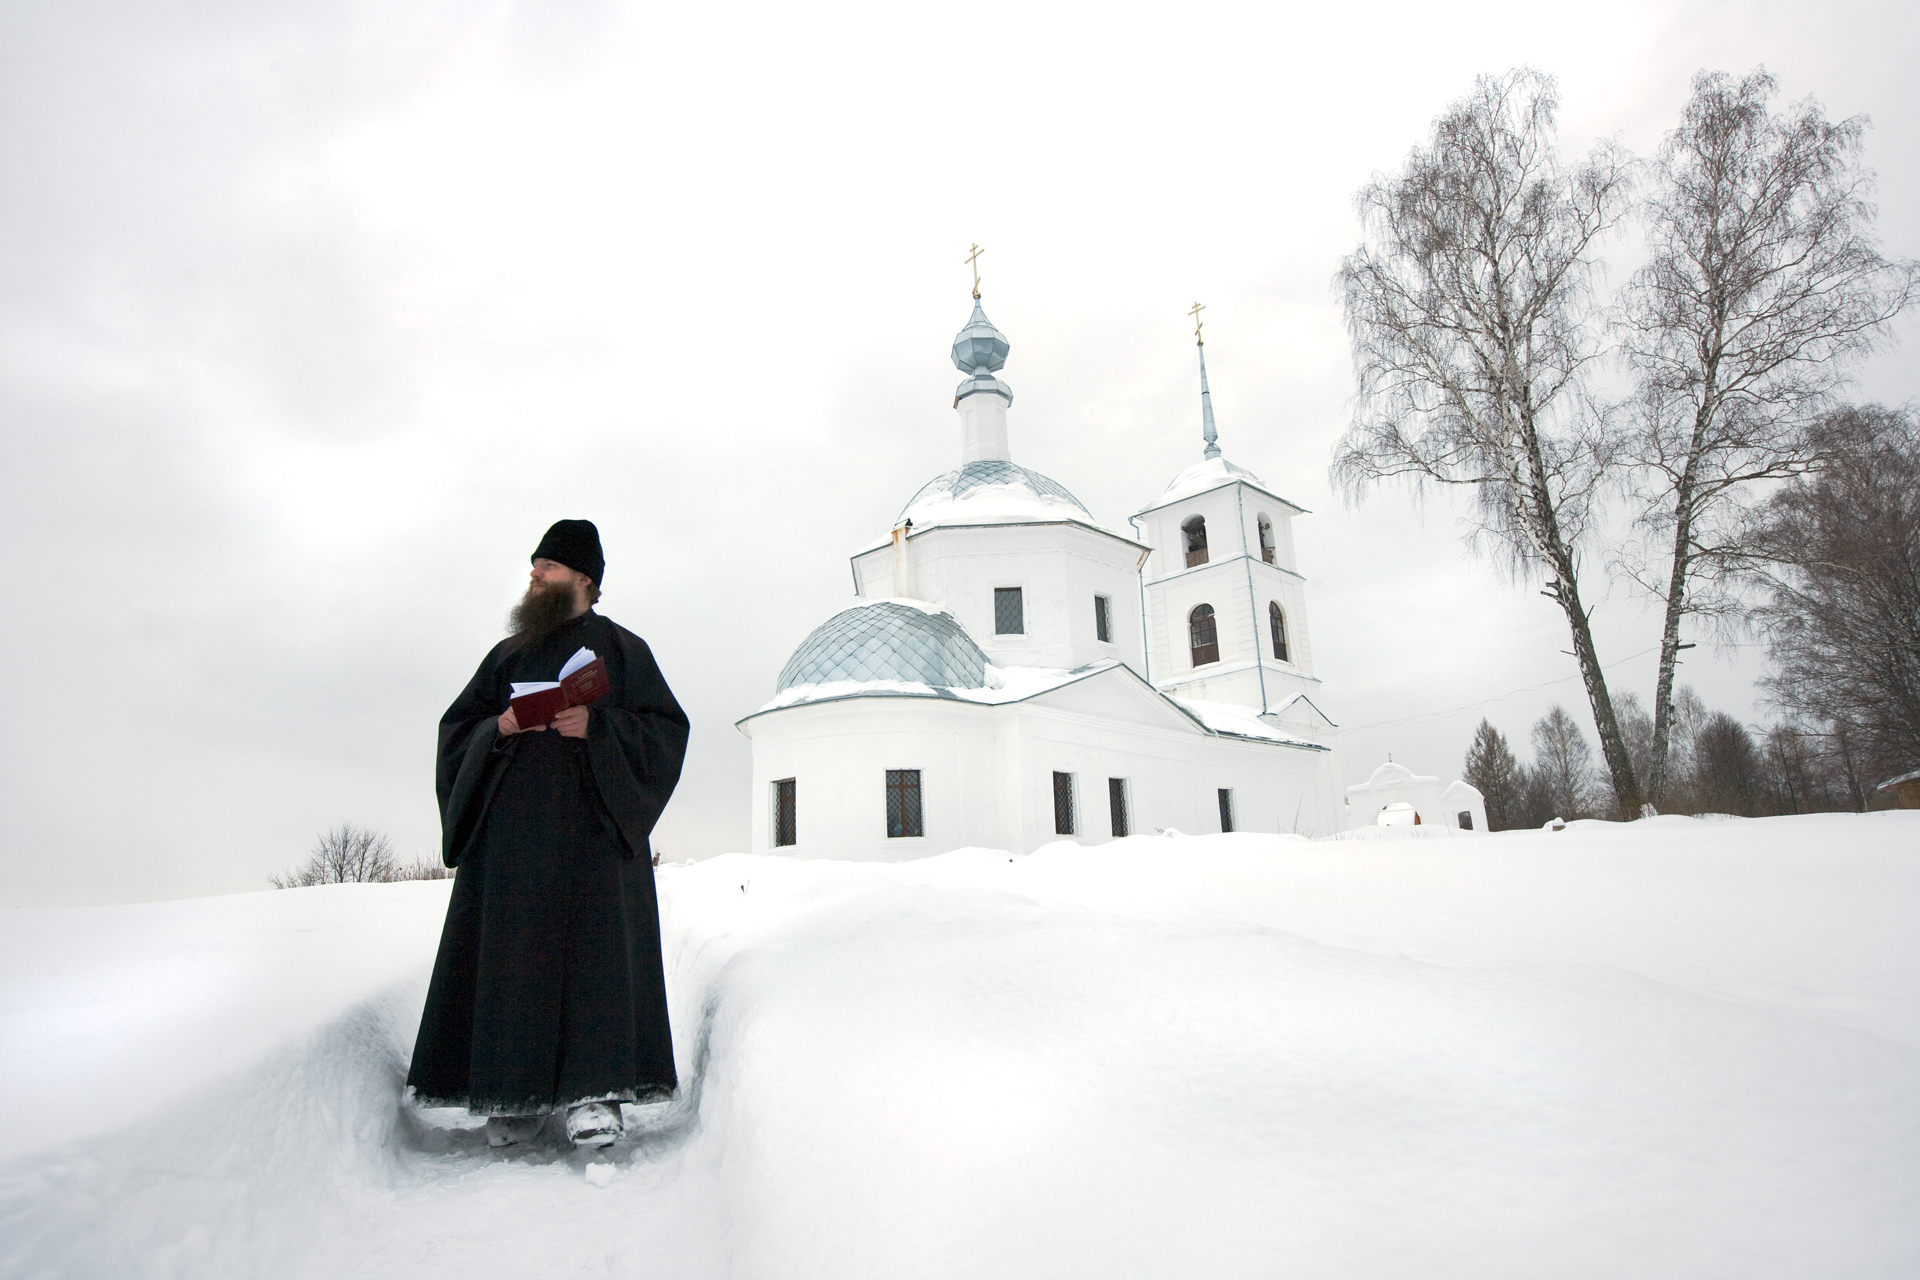 Father Sevastyan meditates at Svytao-Kazansky hermitage, one of many Russian Orthodox communities resurrecting across the land.  Near Murom, Russia